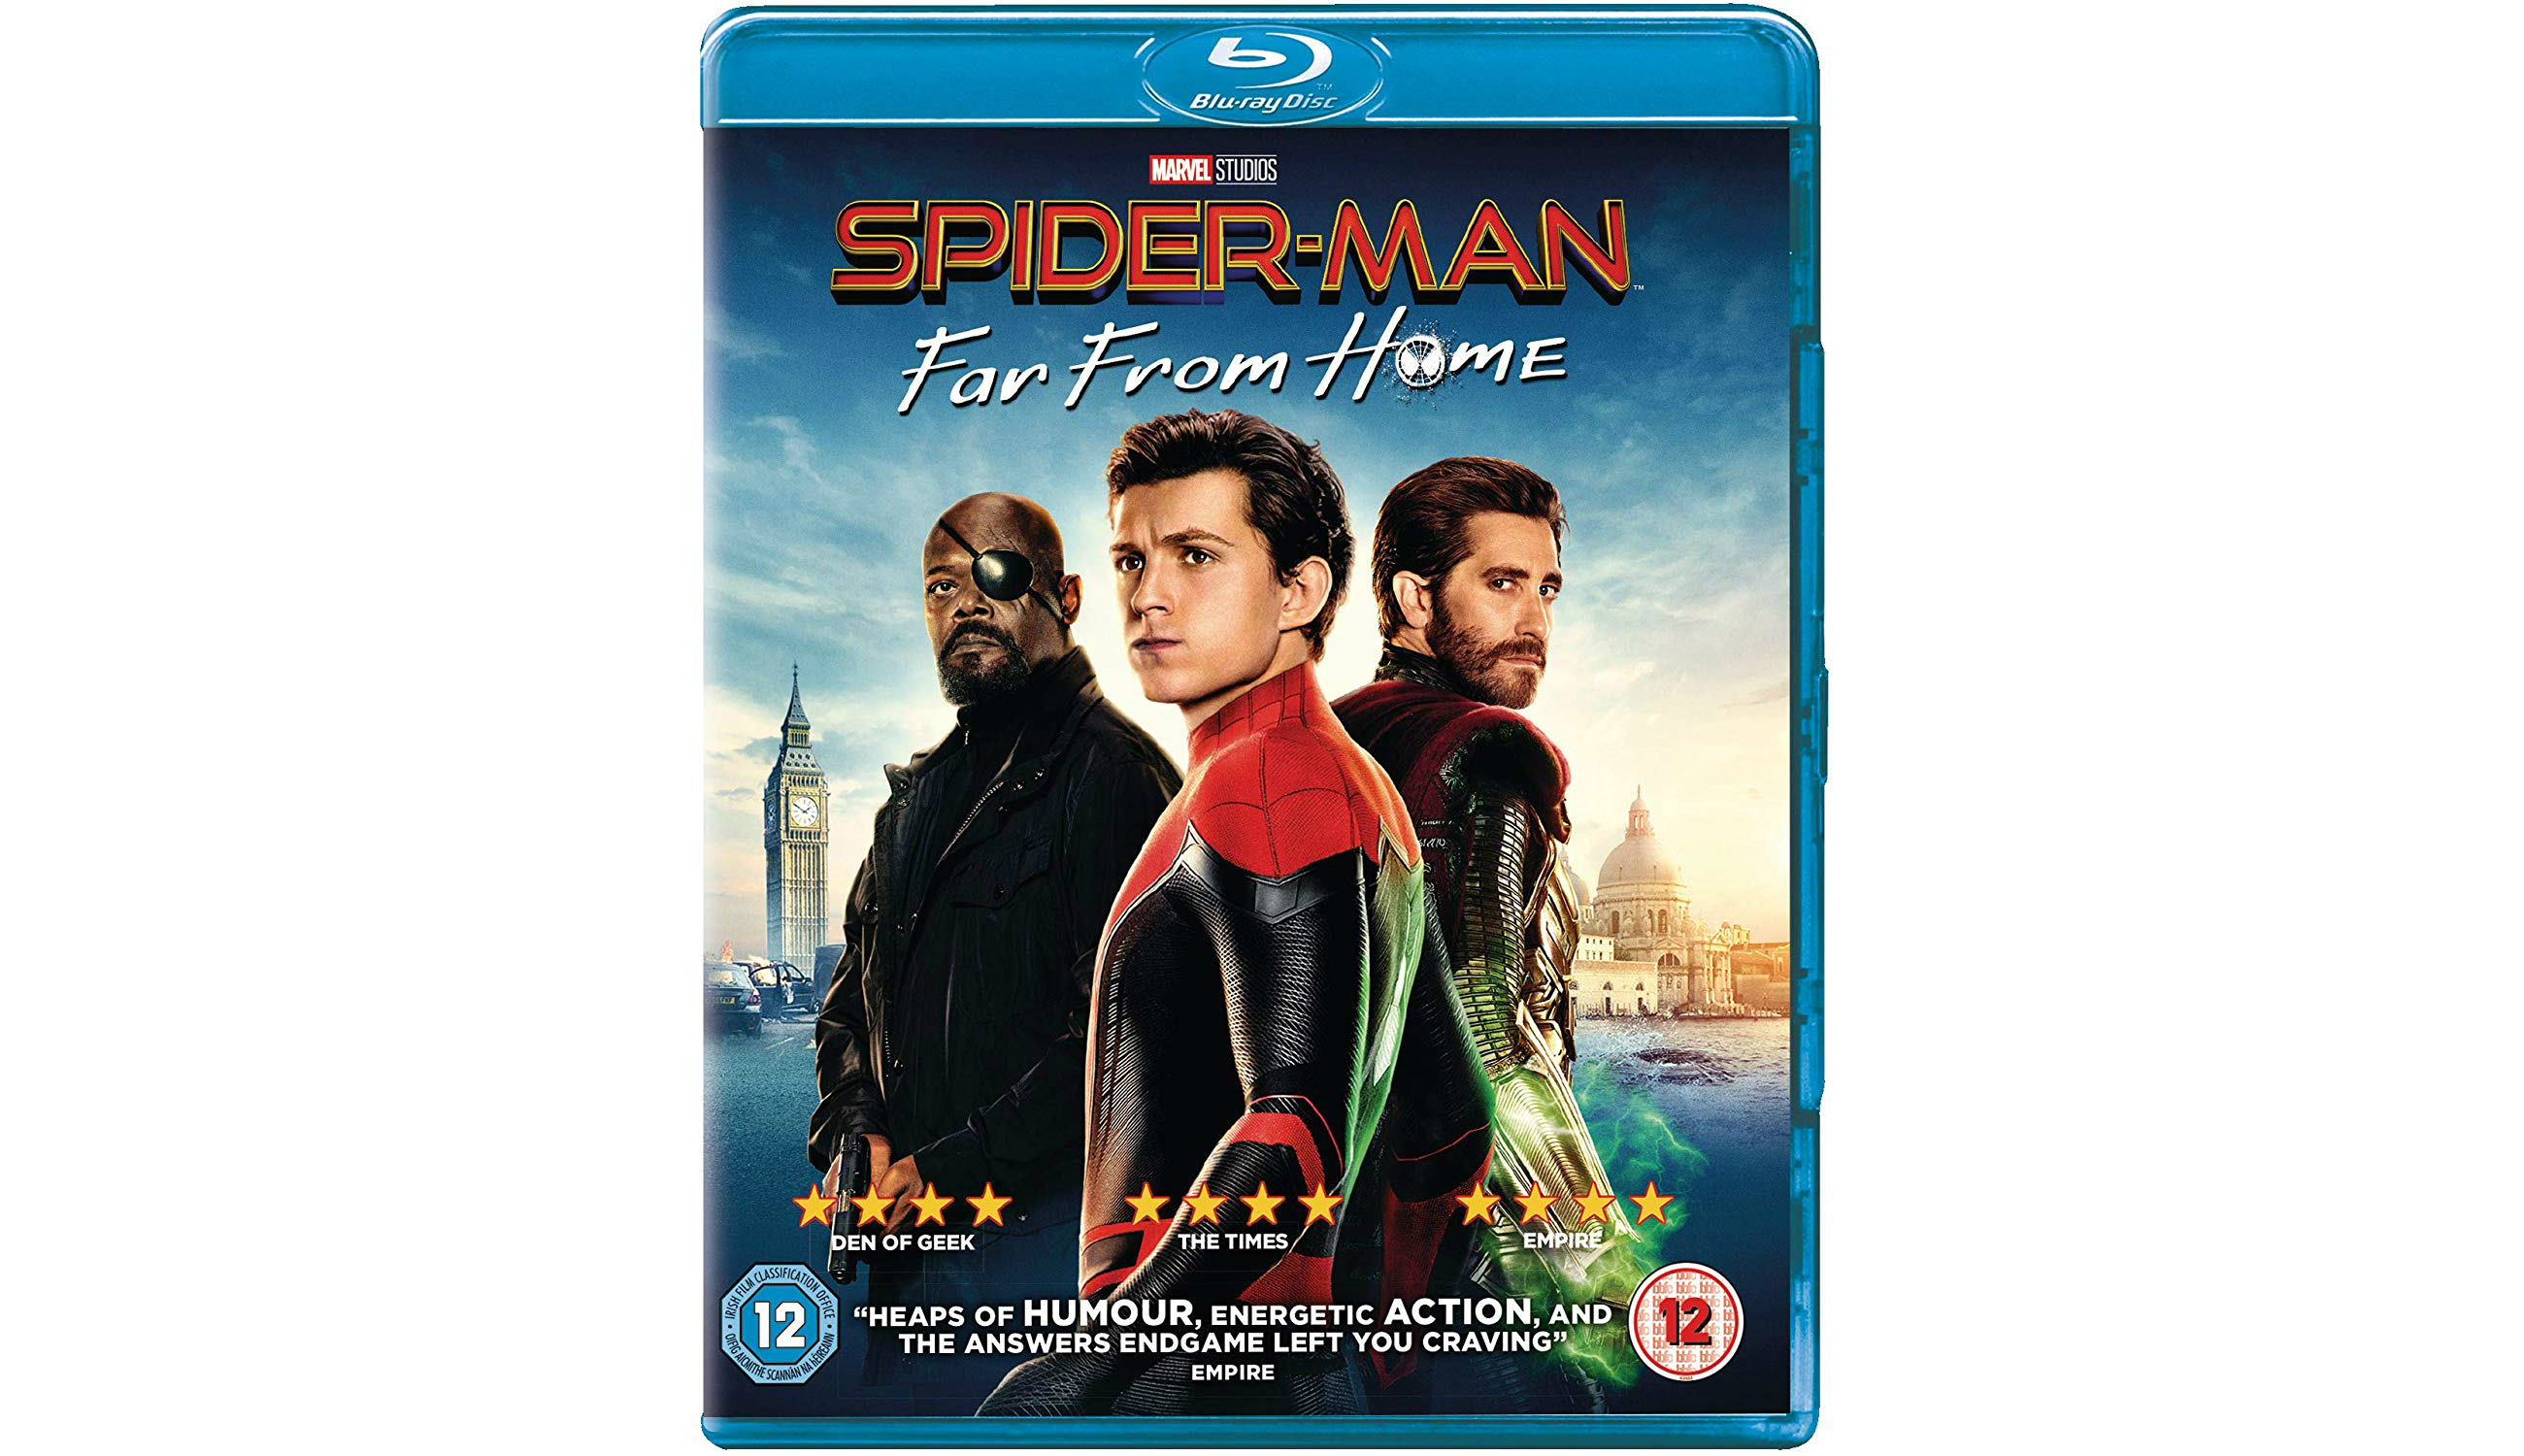 Win Spider-man: Far From Home On Blu-ray™